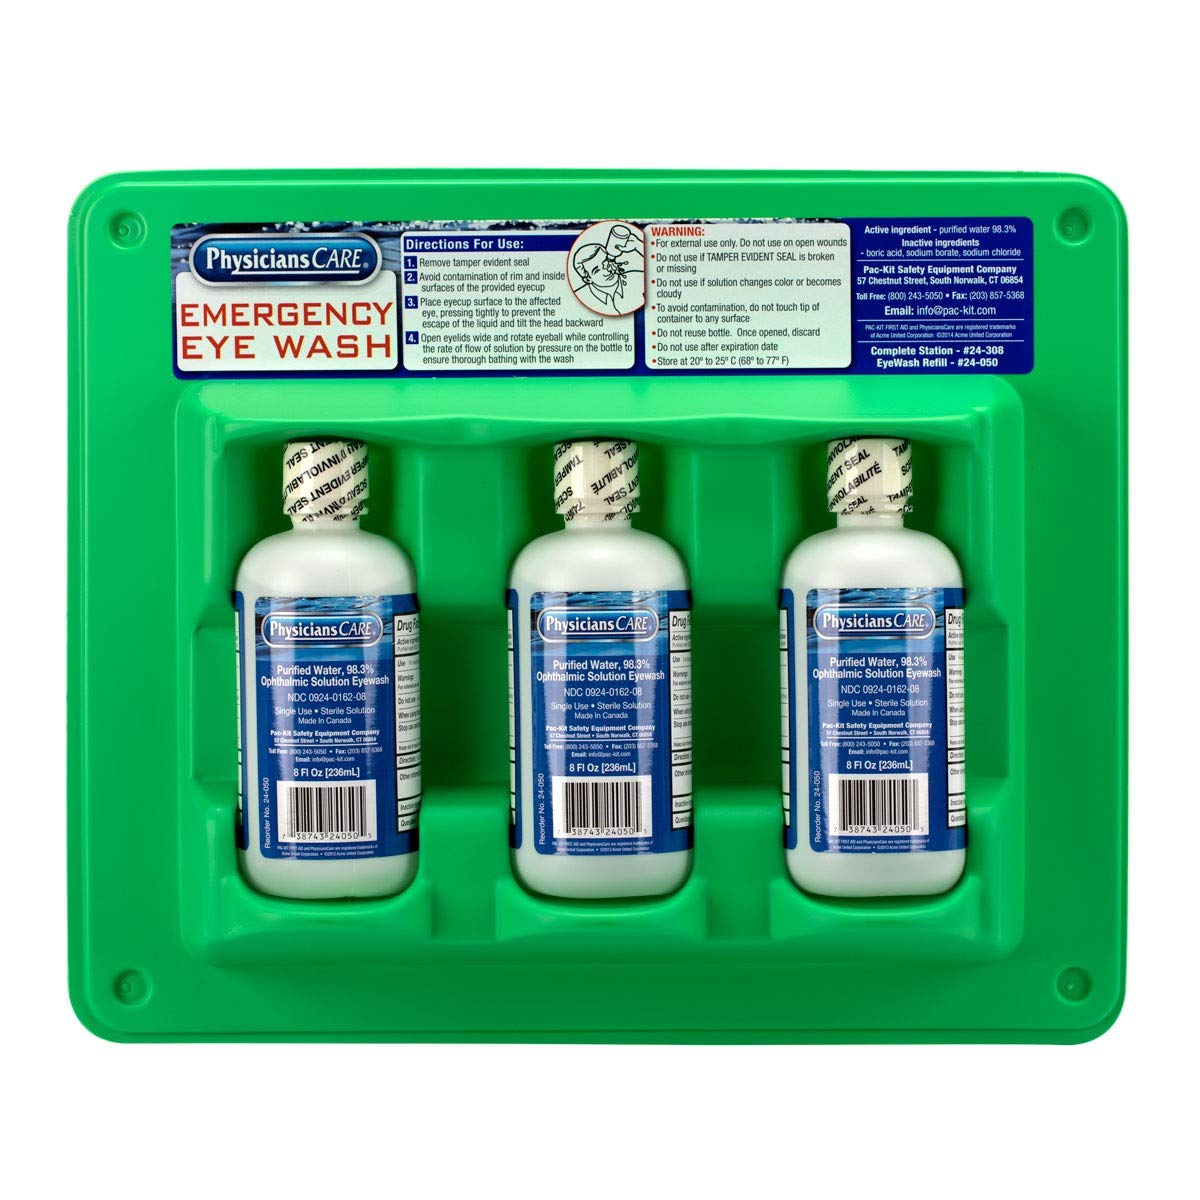 PhysiciansCare by First Aid Only 24-308 Wall Mountable Eye Wash Station with Triple 8 oz Bottle, 13.5'' L x 3'' W x 11.5'' H by First Aid Only